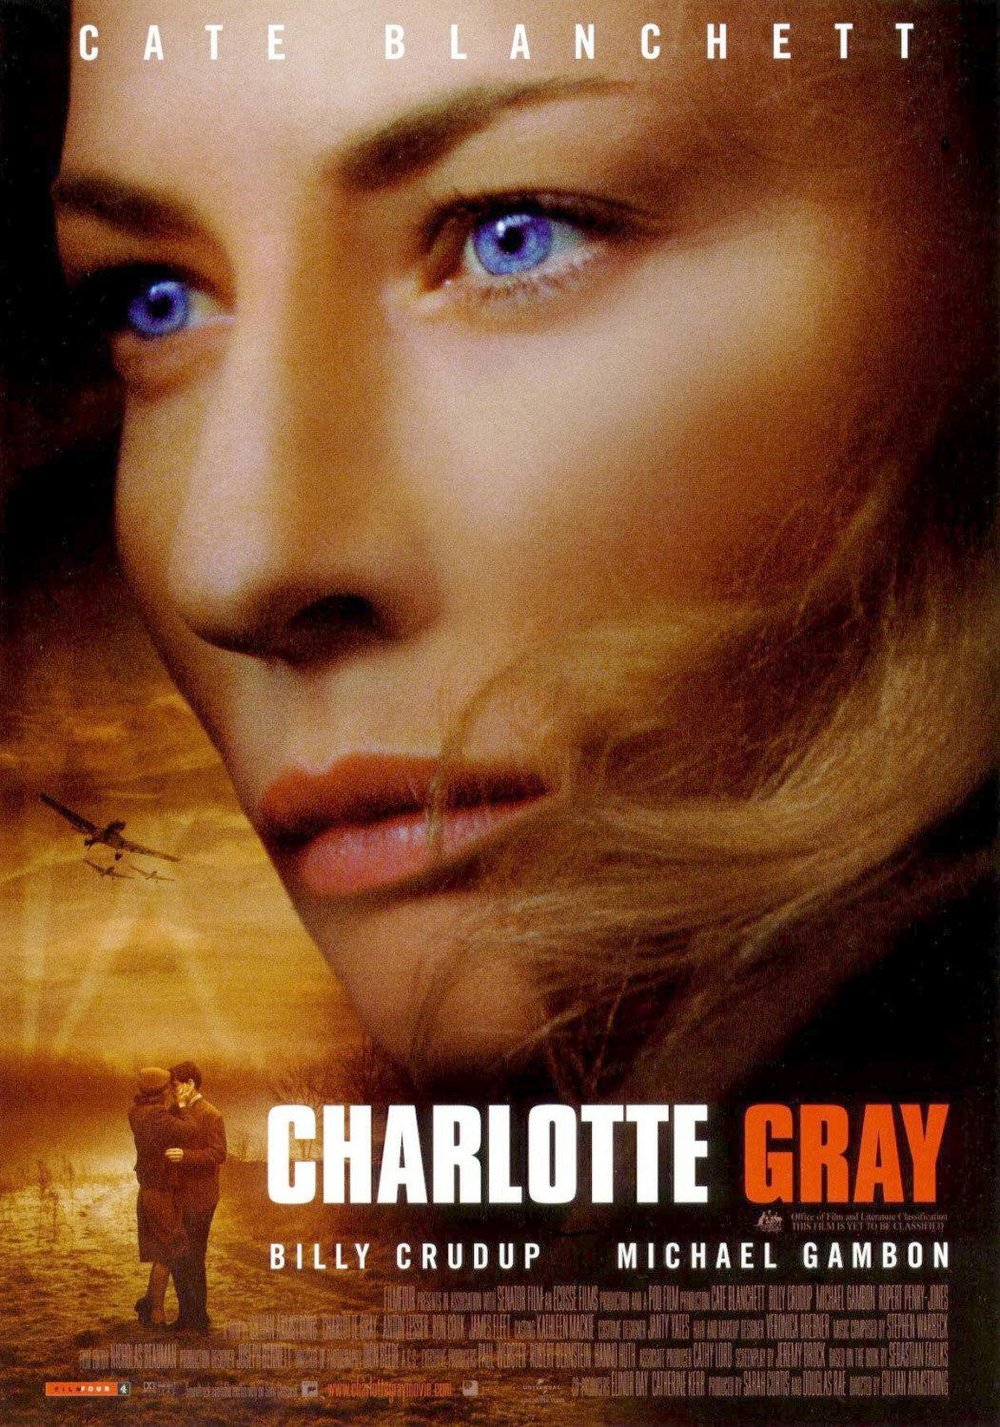 749579017-2001-charlotte-gray-official-movie-poster.jpg